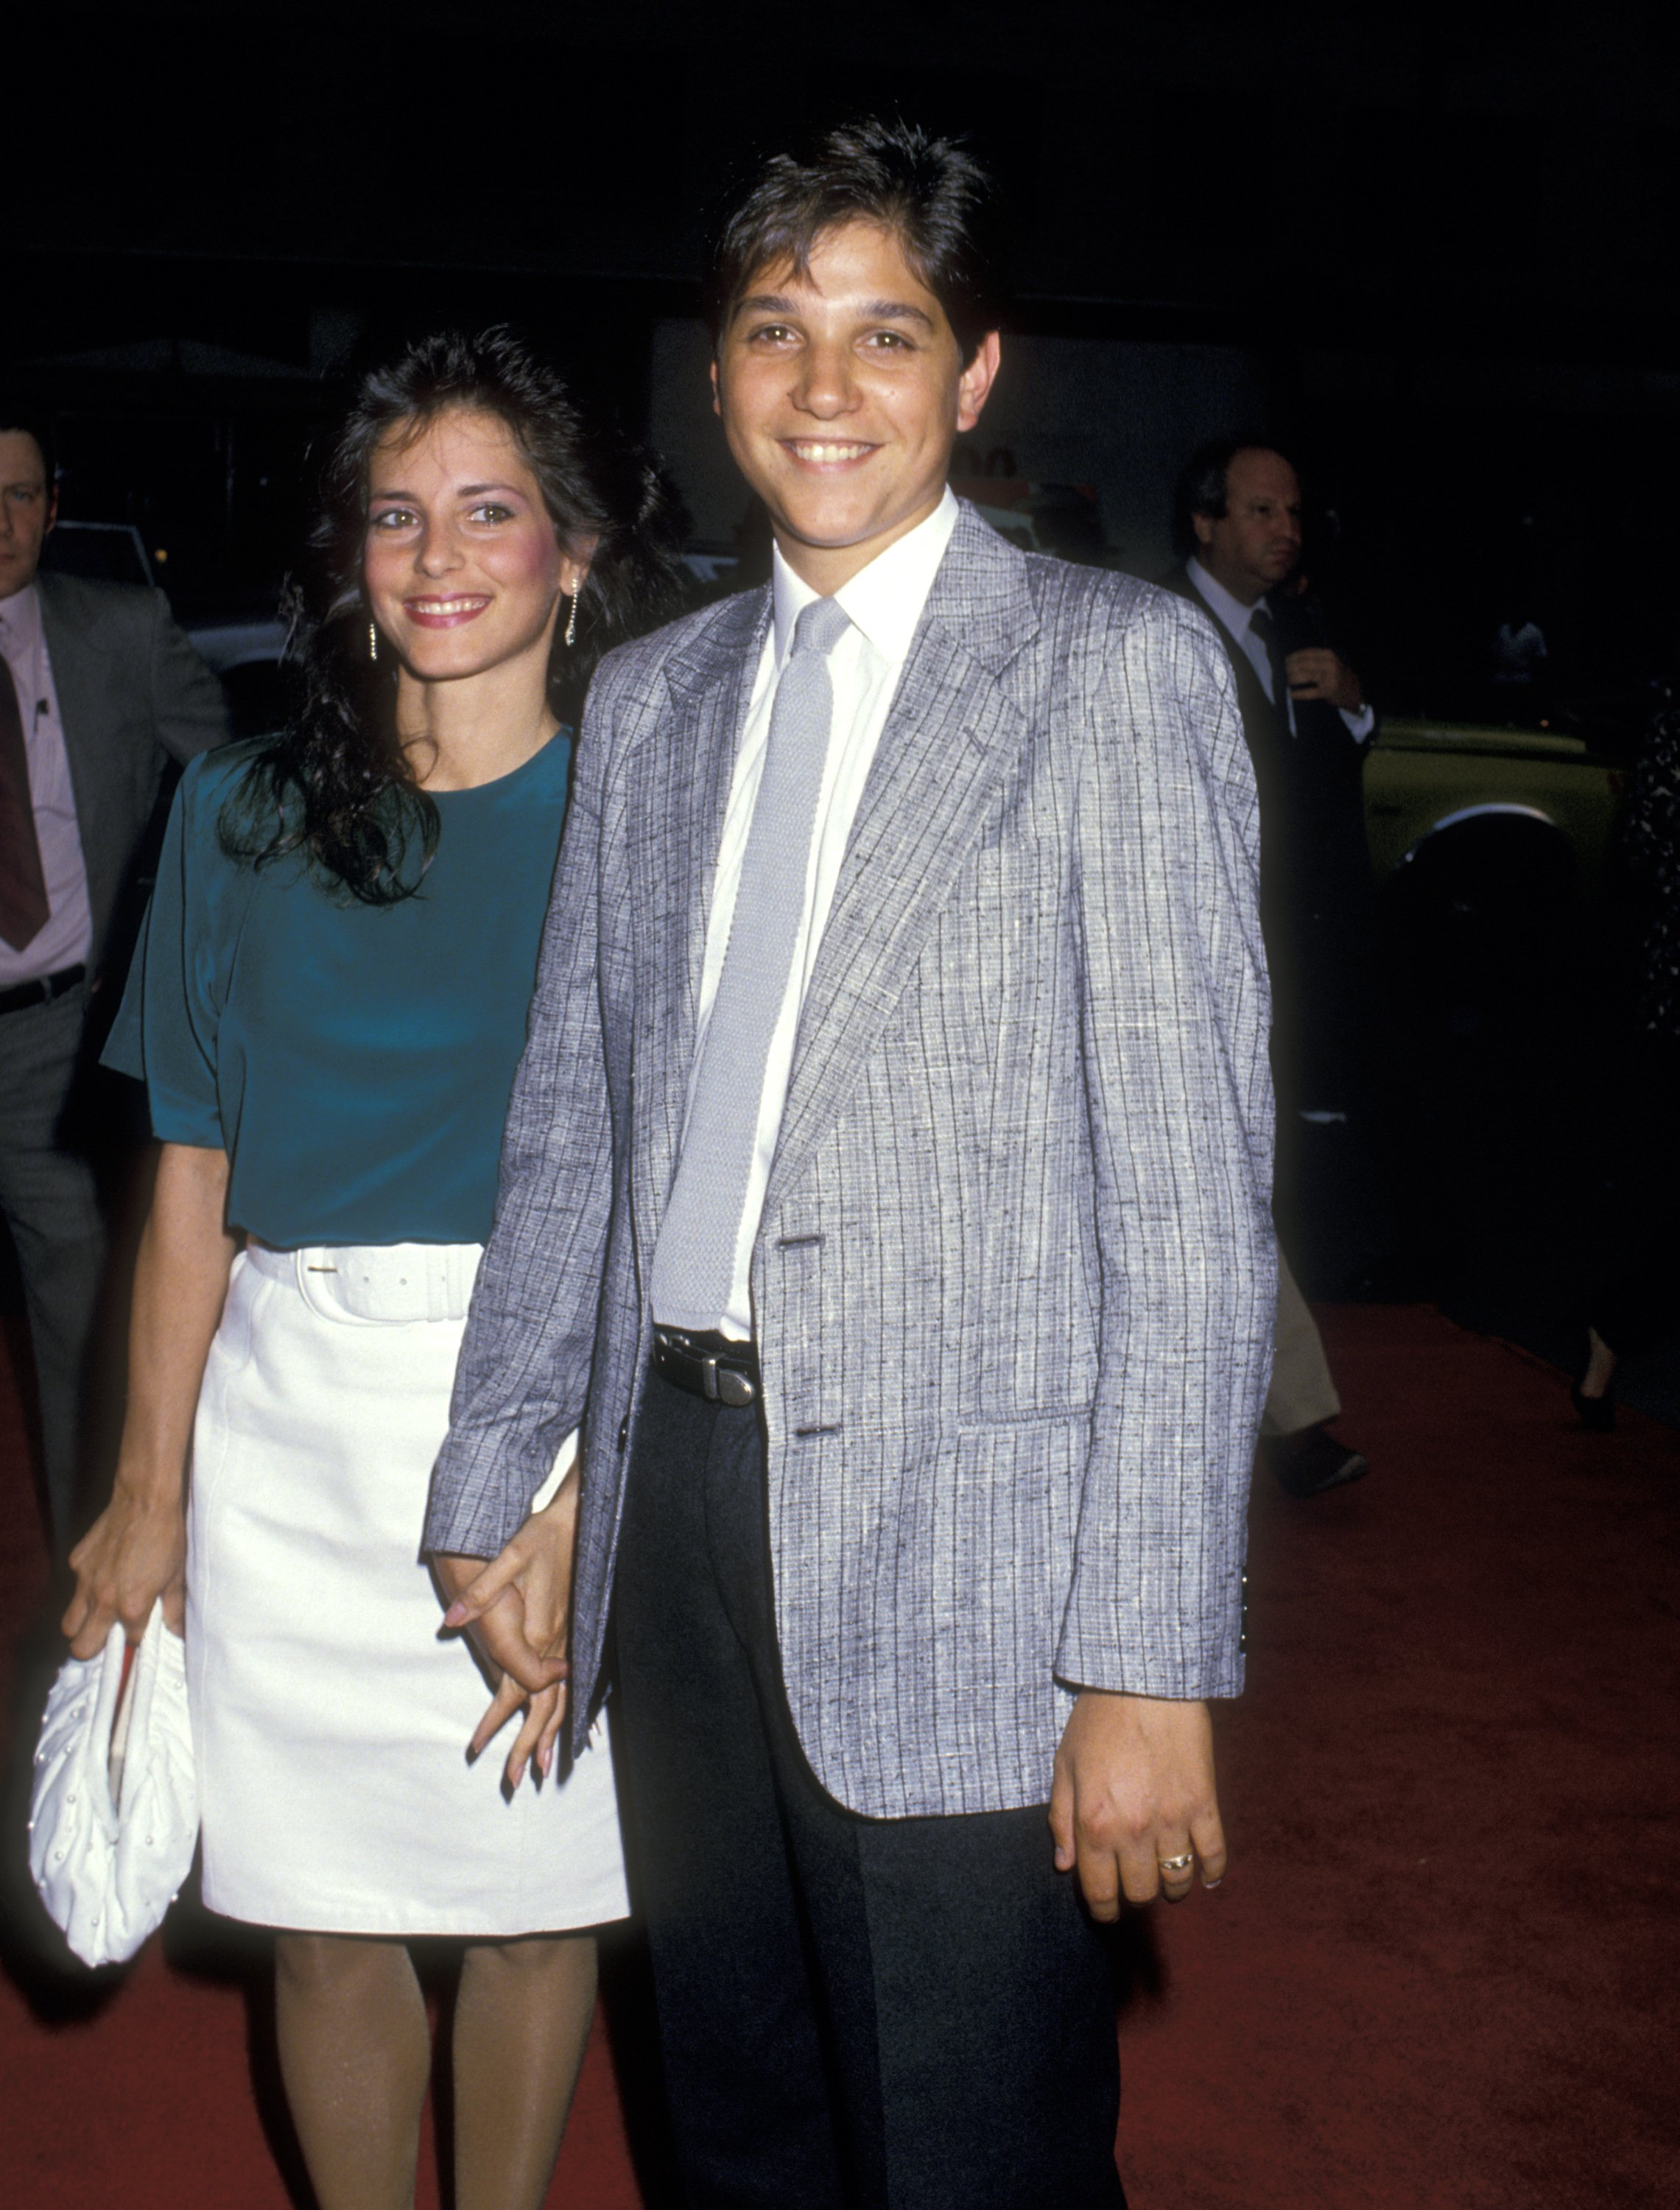 Ralph Macchio und Phyllis Fierro bei der Premiere von 'Midnight Run', Sutton Theatre, New York City. | Quelle: Getty Images